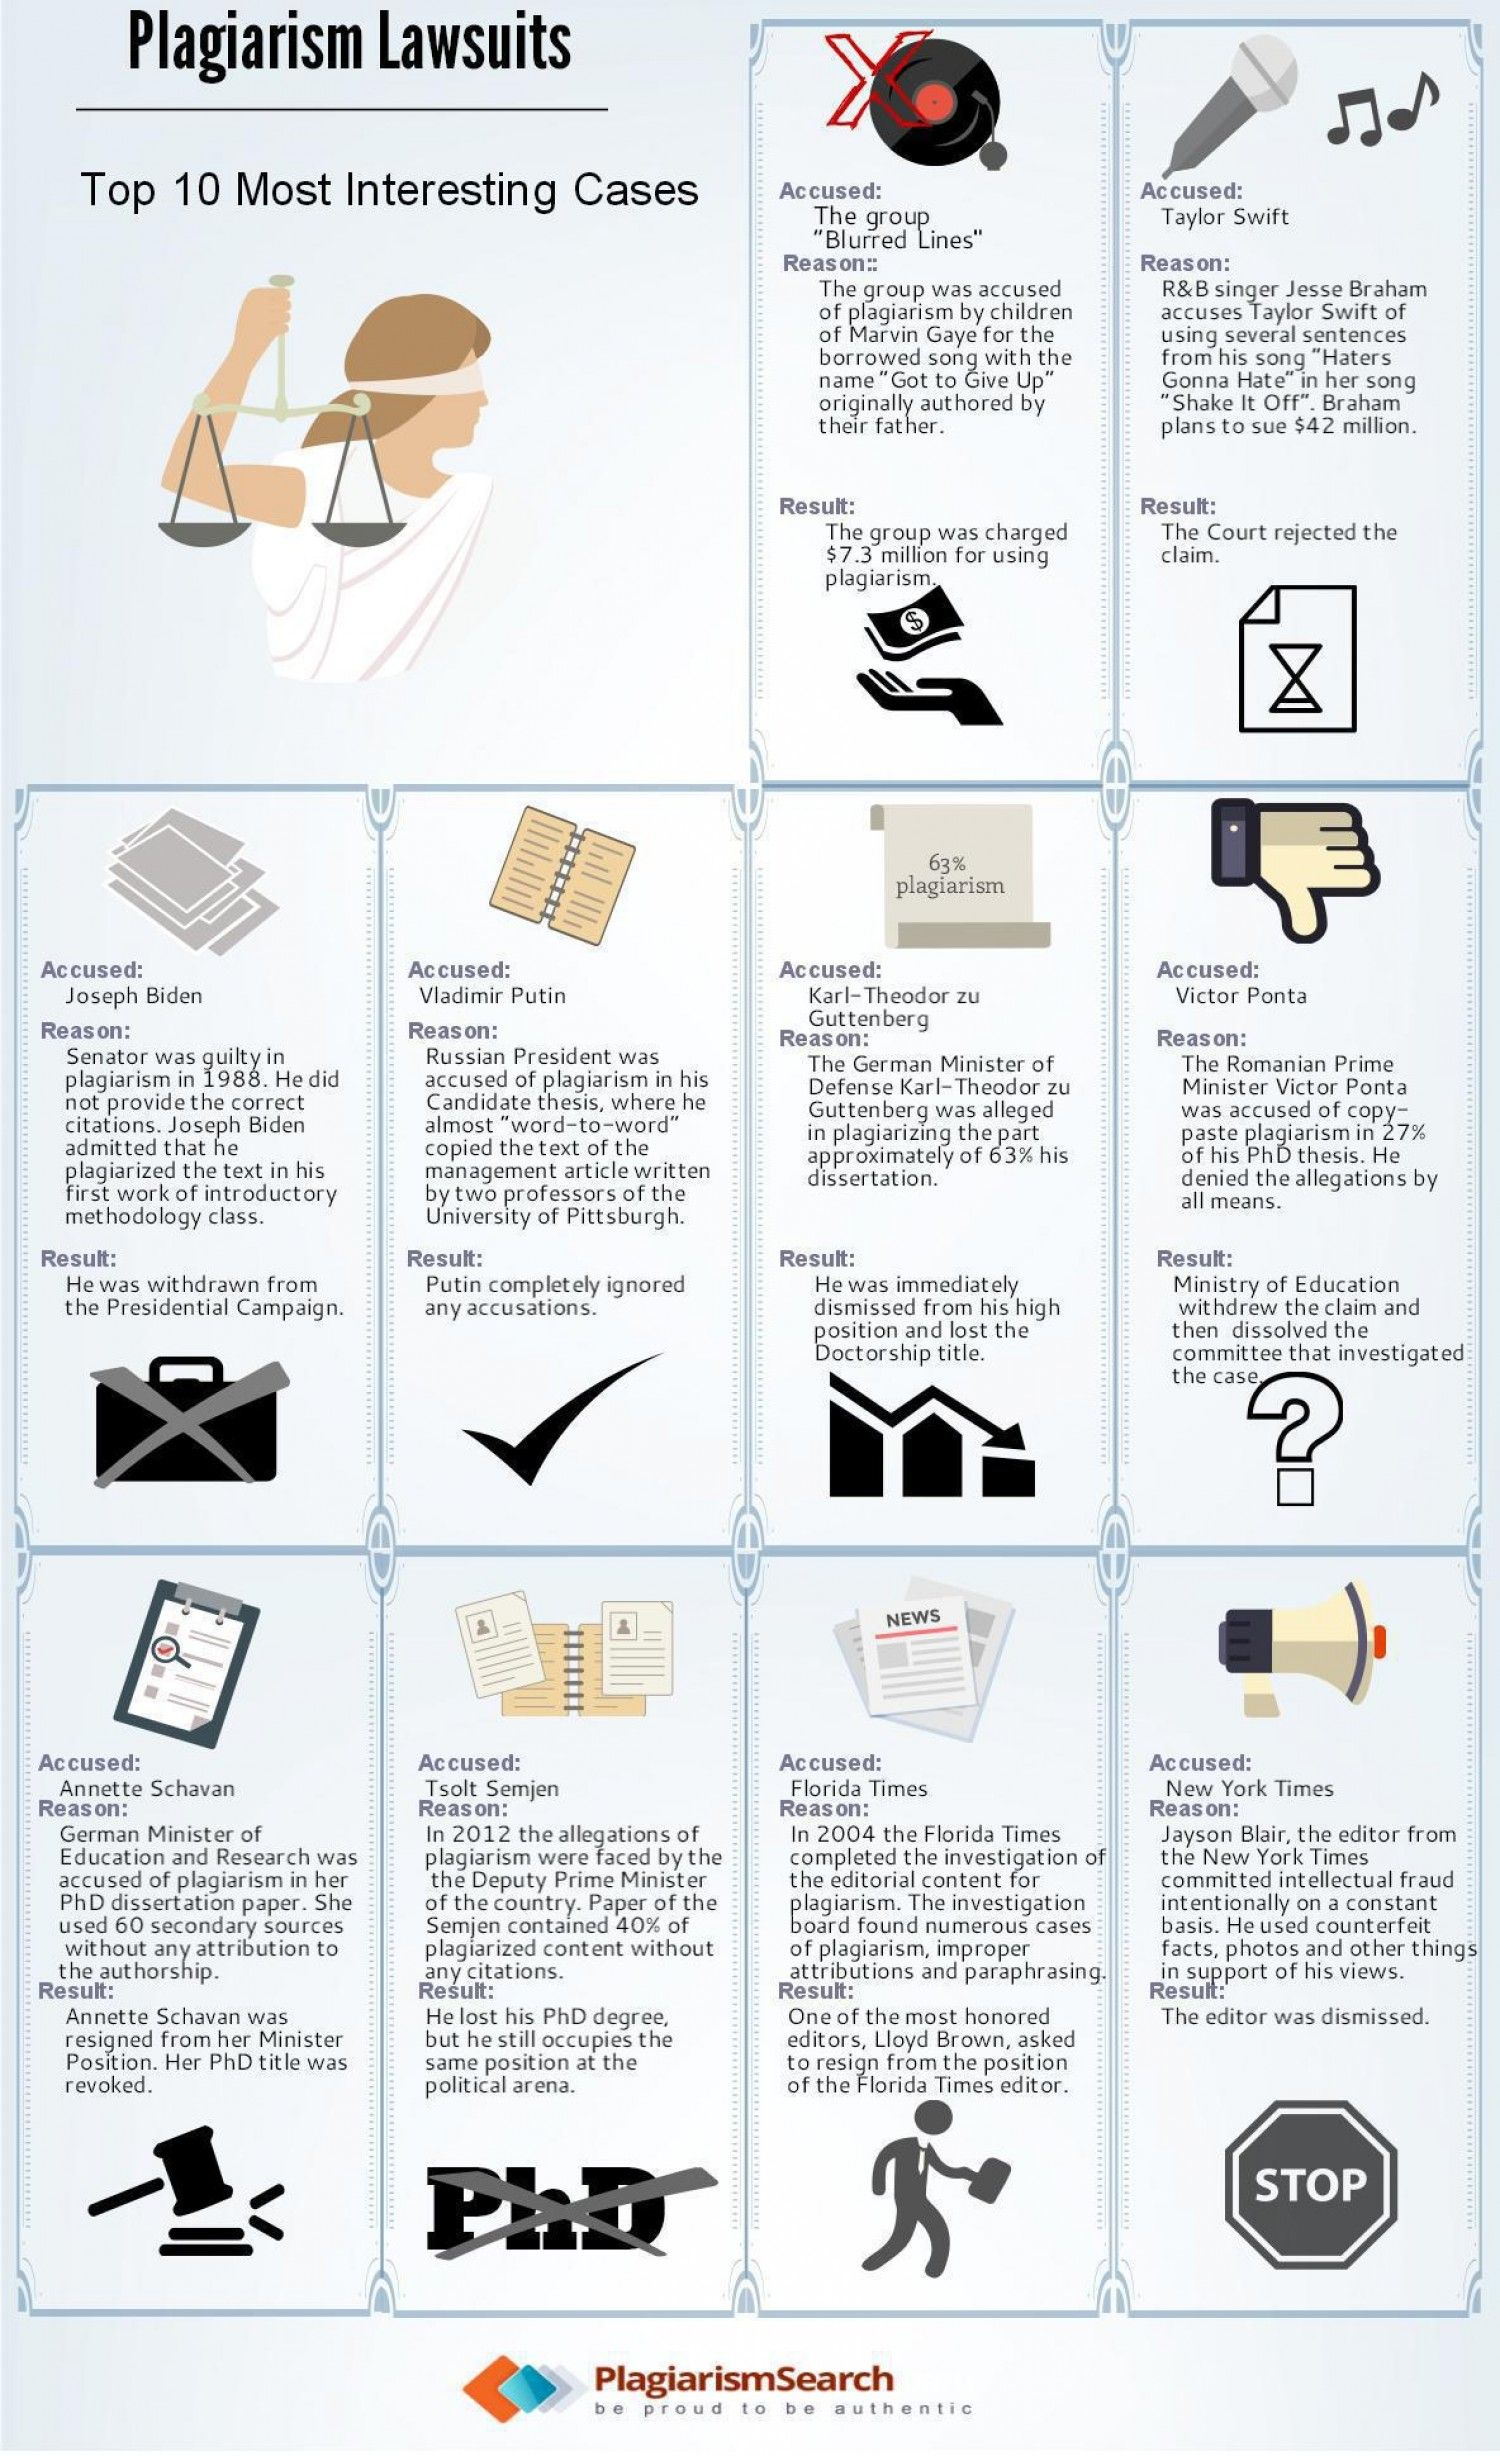 Plagiarism Lawsuits Top 10 Most Interesting Cases Infographic Plagiarism Research Skills Case